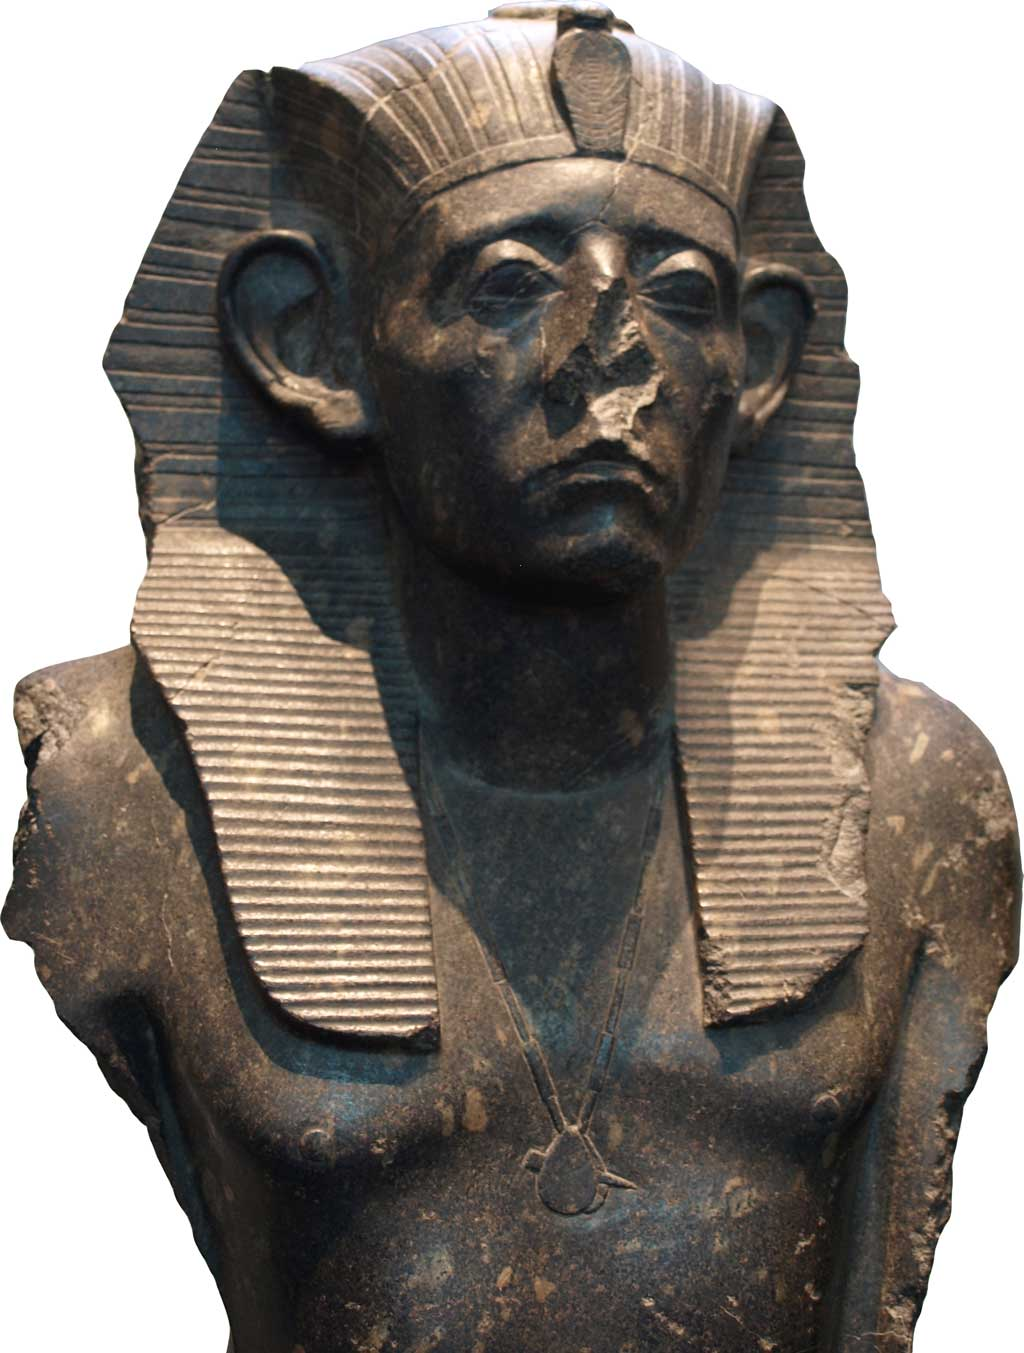 Black sandstone statue of Senusret III wearing the Pharaonic headdress. His nose is missing from the statue, suggesting that it was defaced. His eyes are contemplative and his brow tense, connoting perhaps his recognition of the vicissitudes which have befallen Egypt in prior centuries.